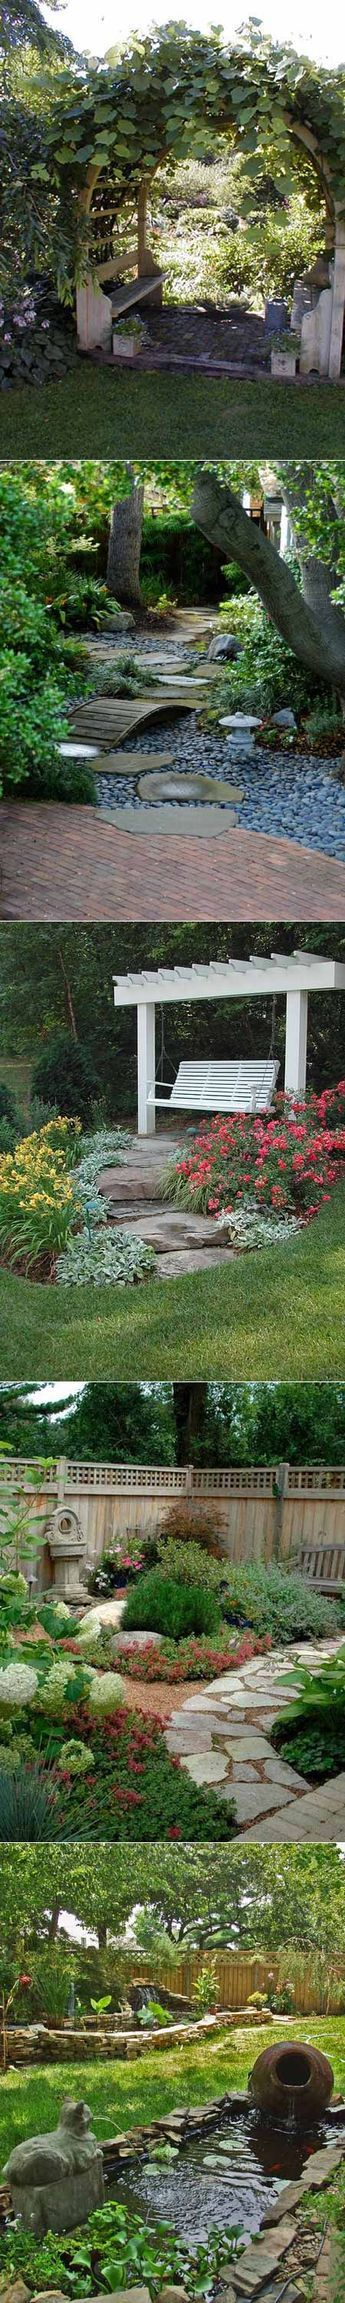 57 best Garten images on Pinterest